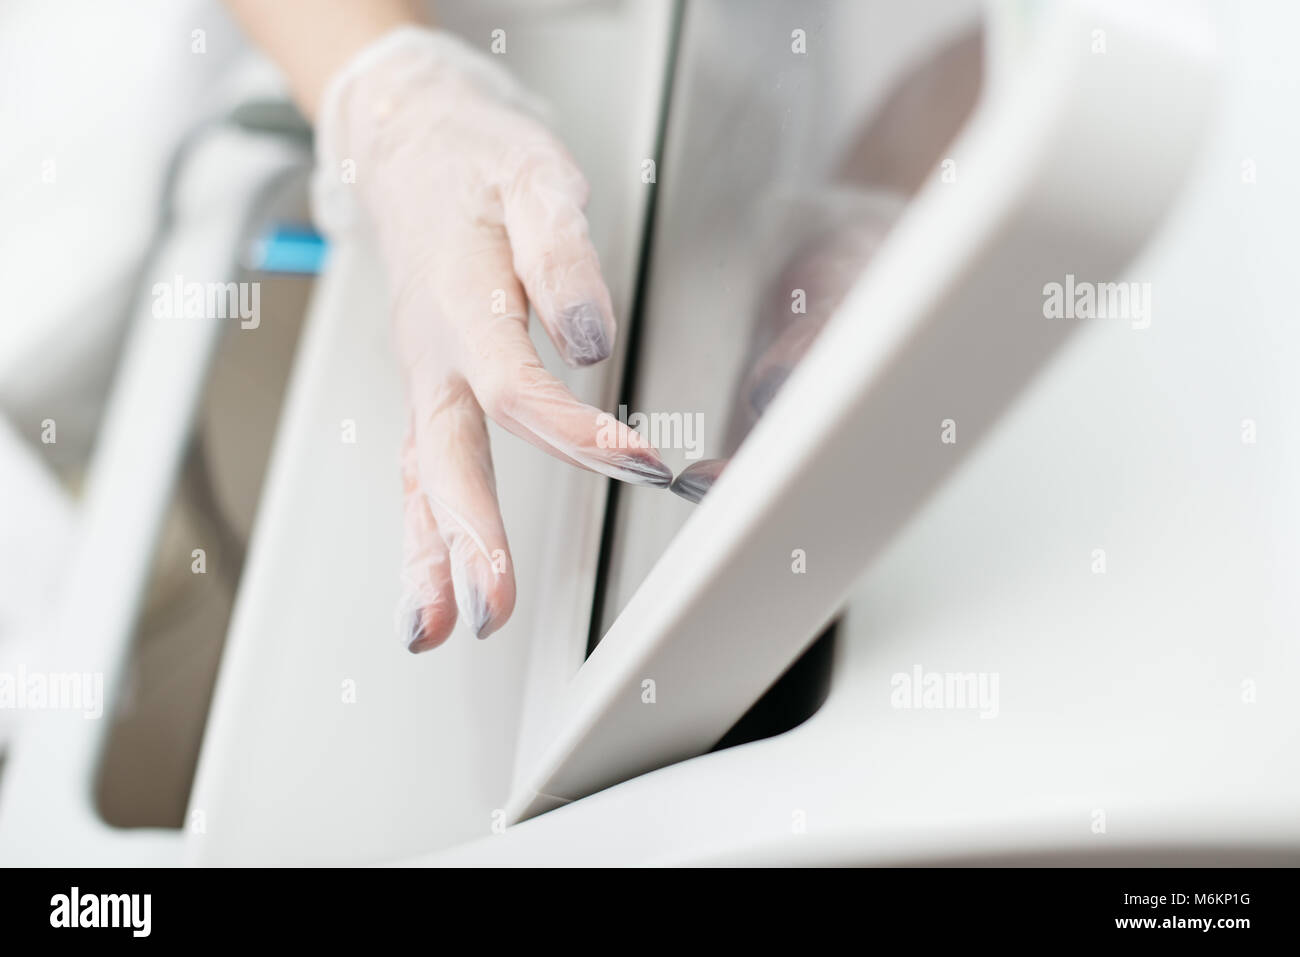 Female hands in polyethylene gloves touching the screen of laser apparatus to turn it on. No face. Close-up. - Stock Image